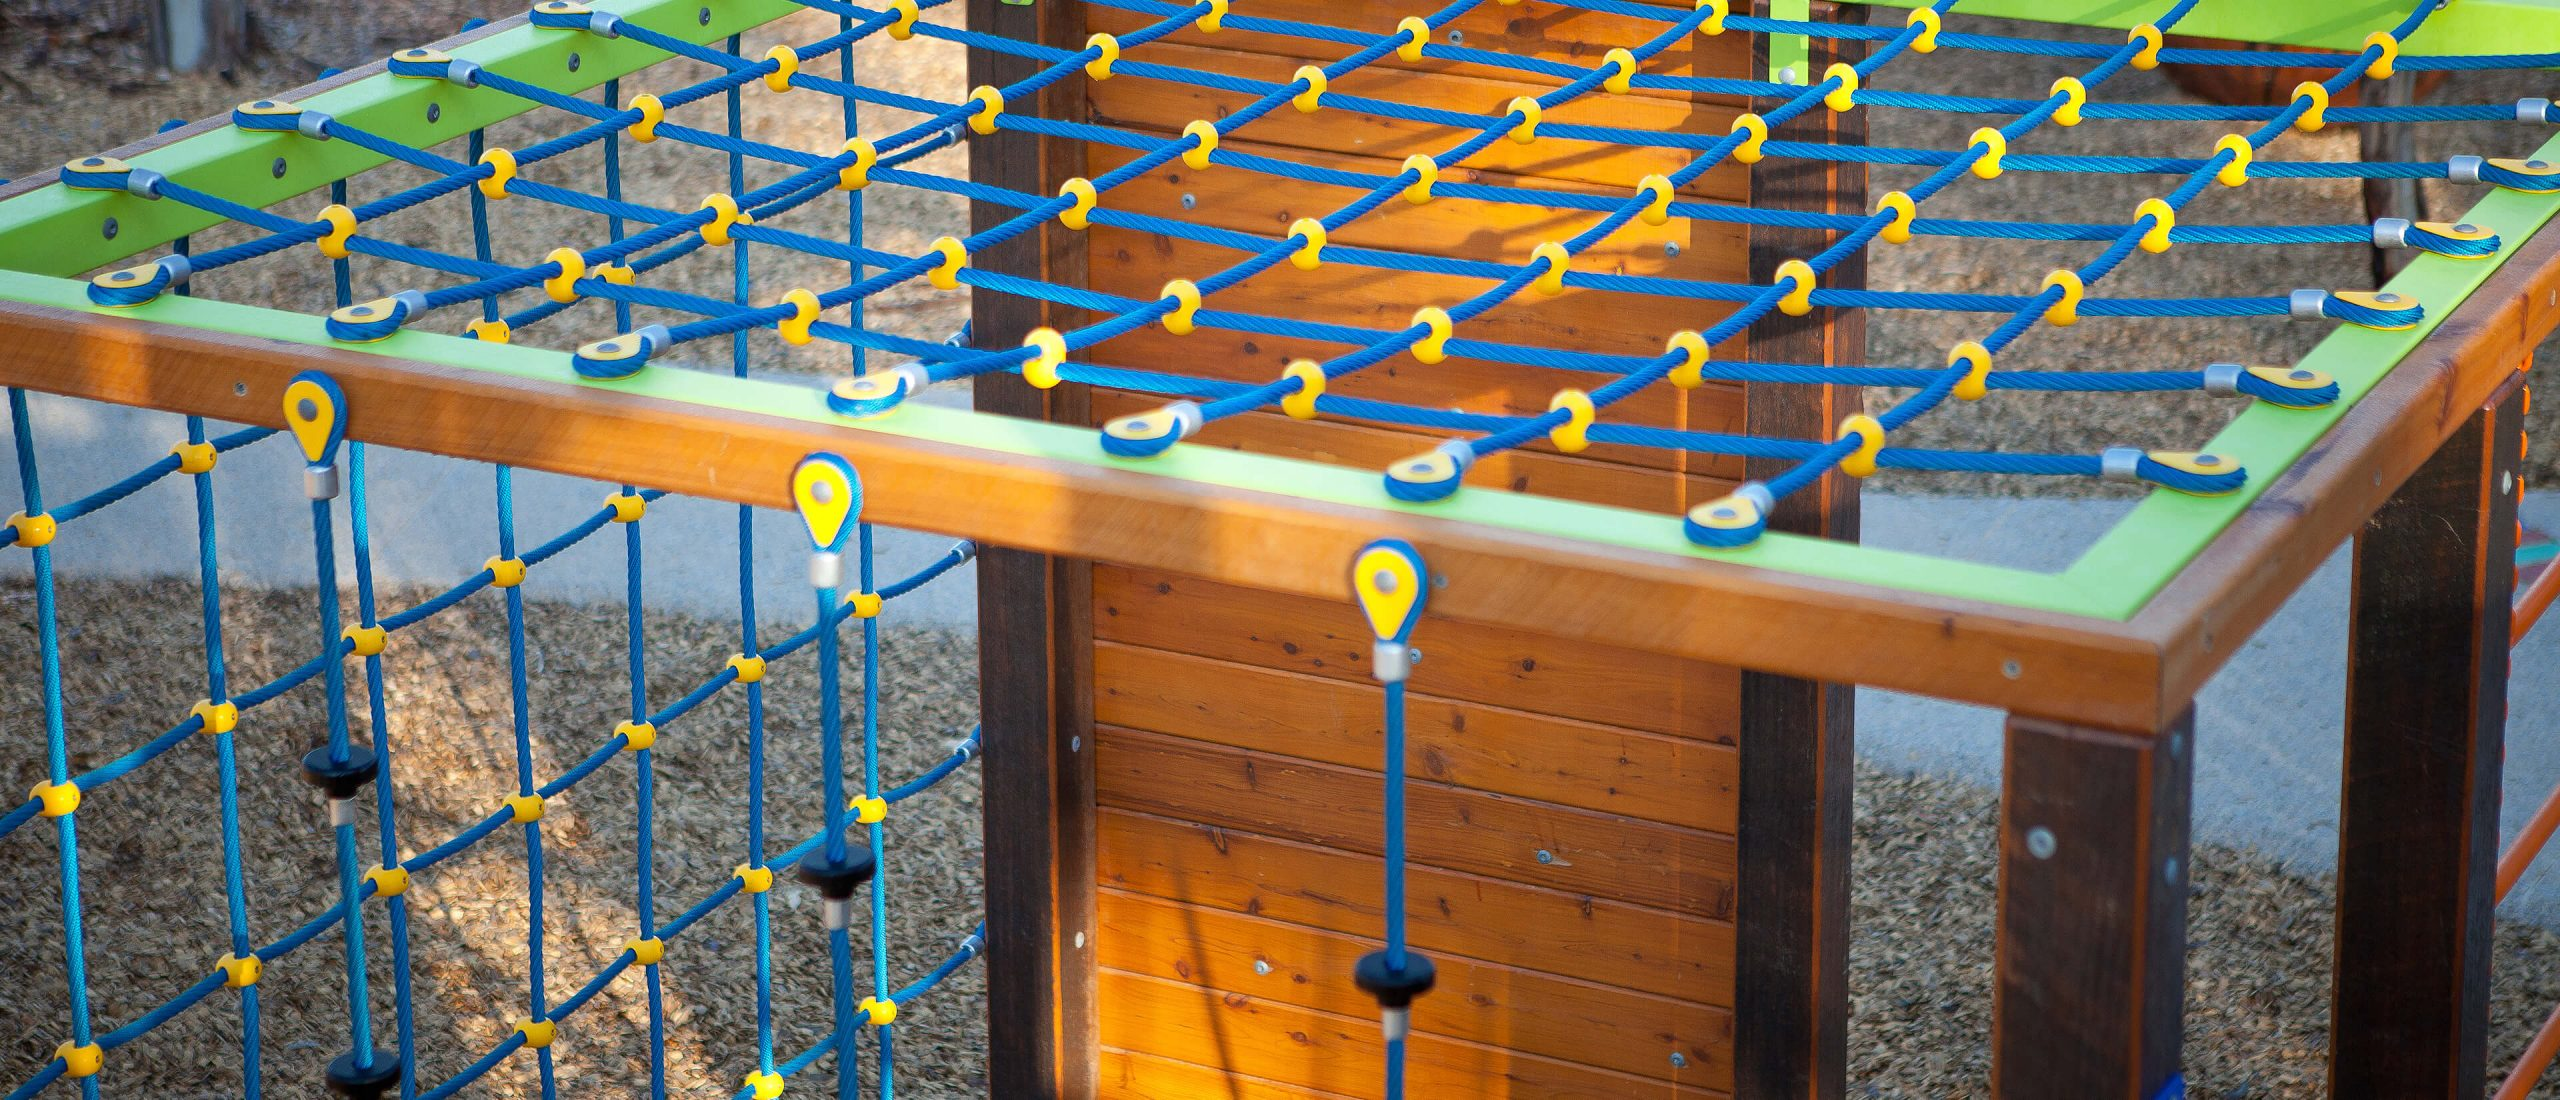 Exciting Safe and Challenging Climbing Cube